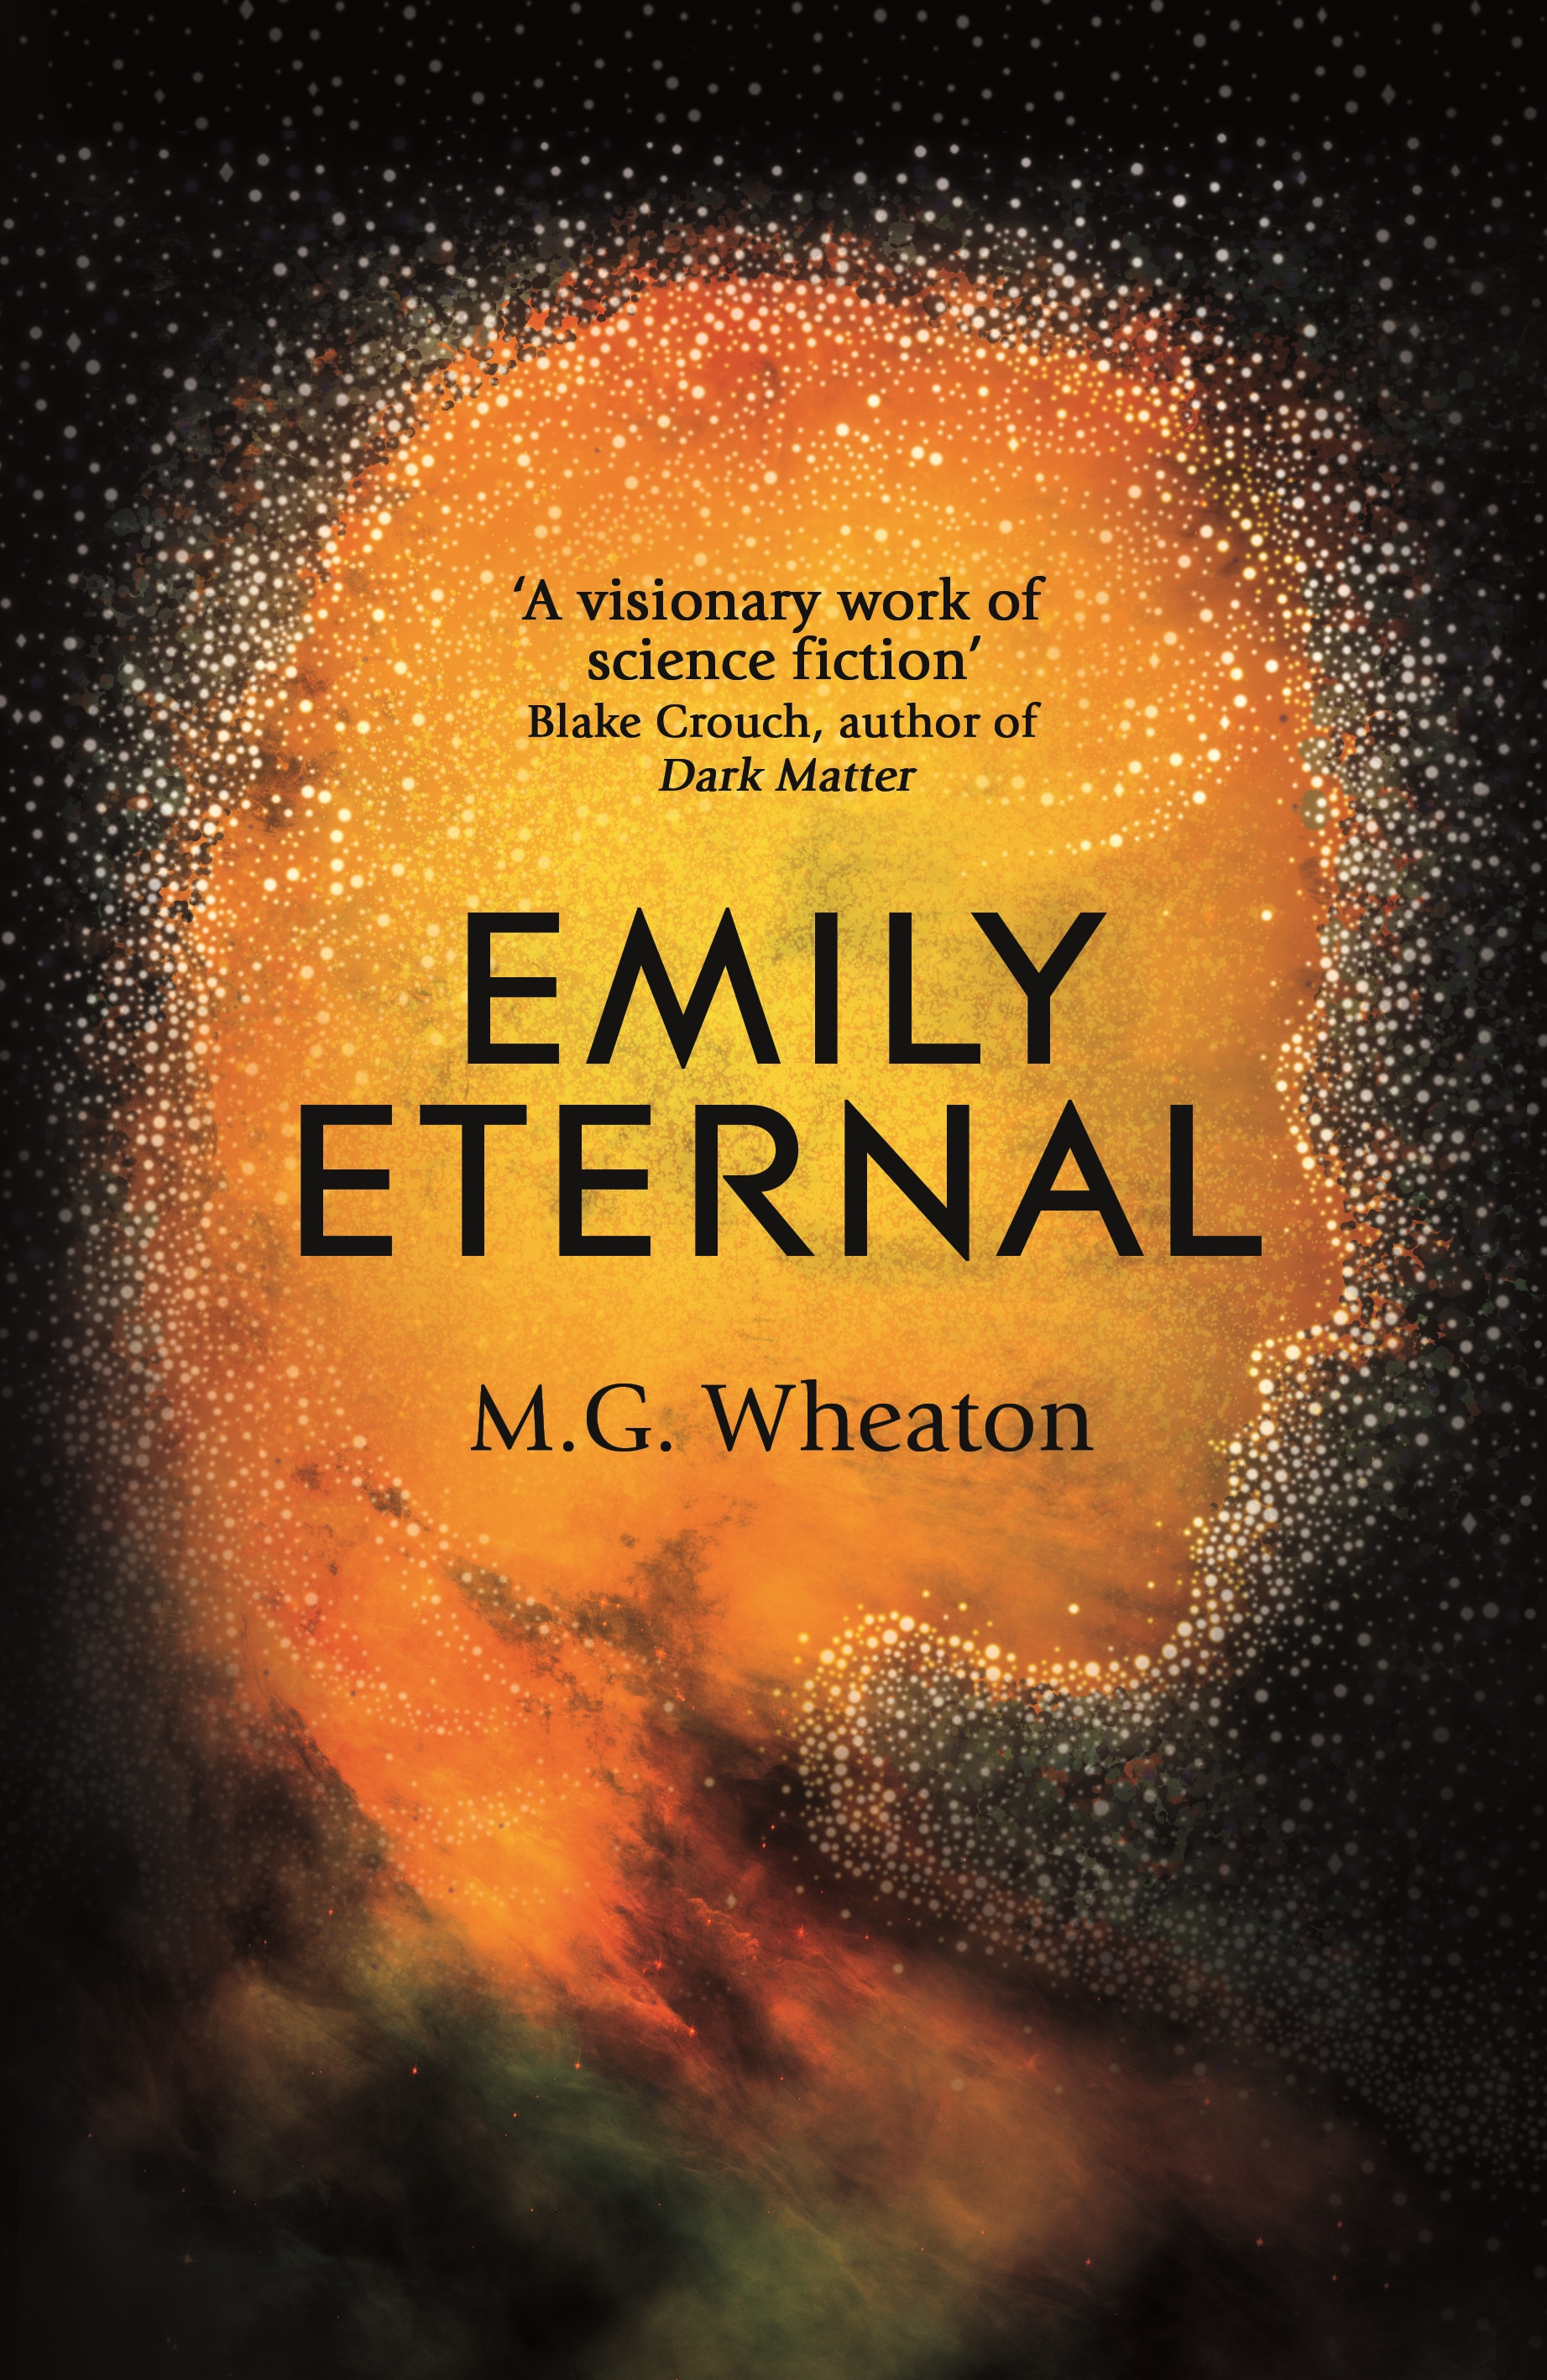 Emily Eternal by M. G. Wheaton hardback jacket.jpg